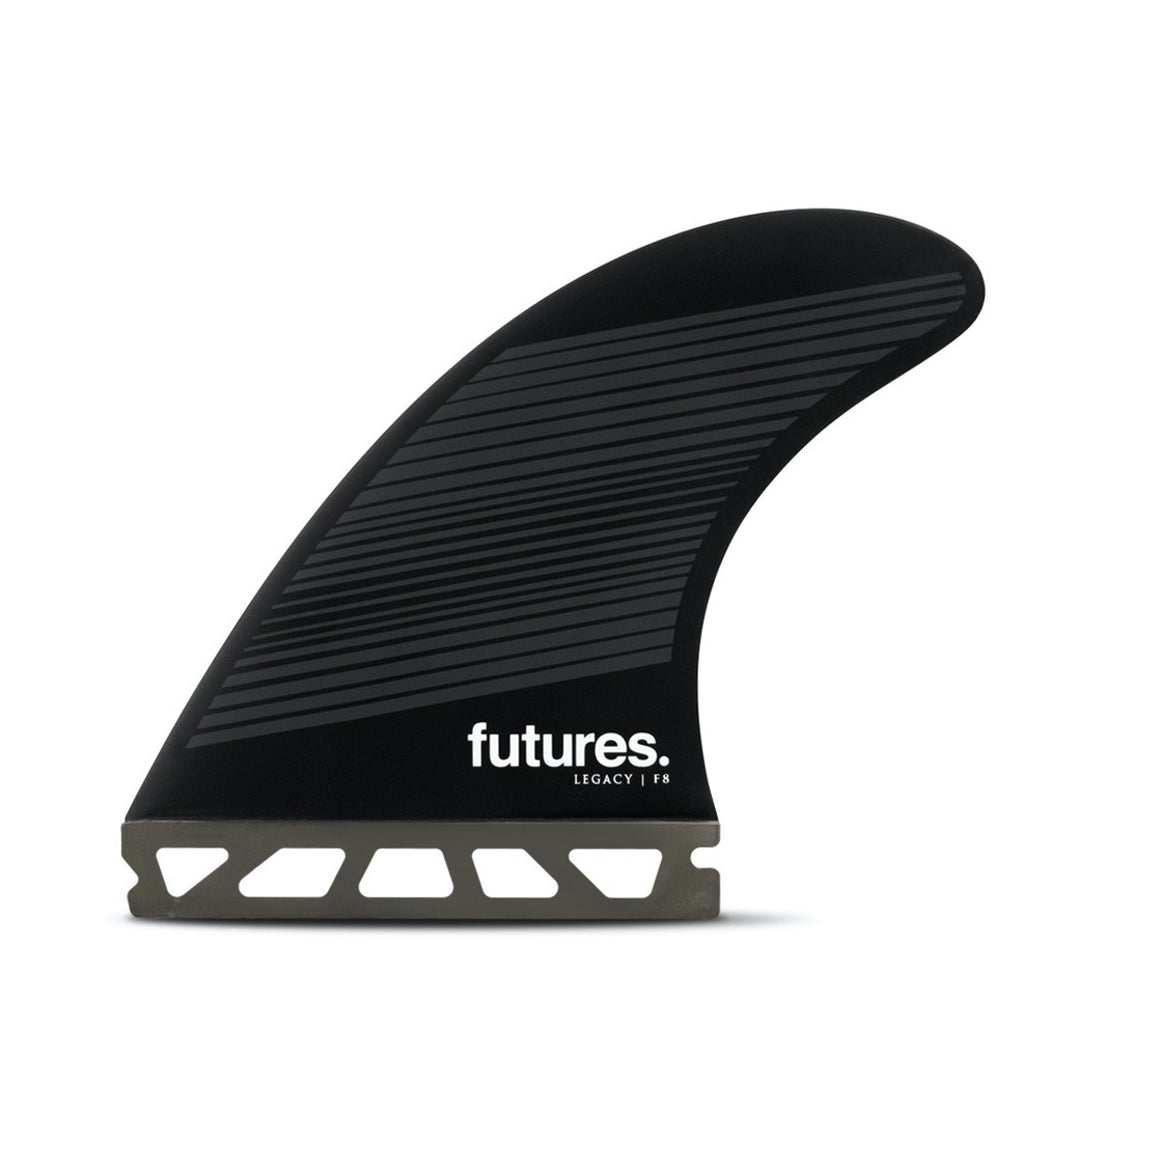 Futures - THRUSTERS - Legacy F8 (L) NEUTRAL	GREY/BLACK